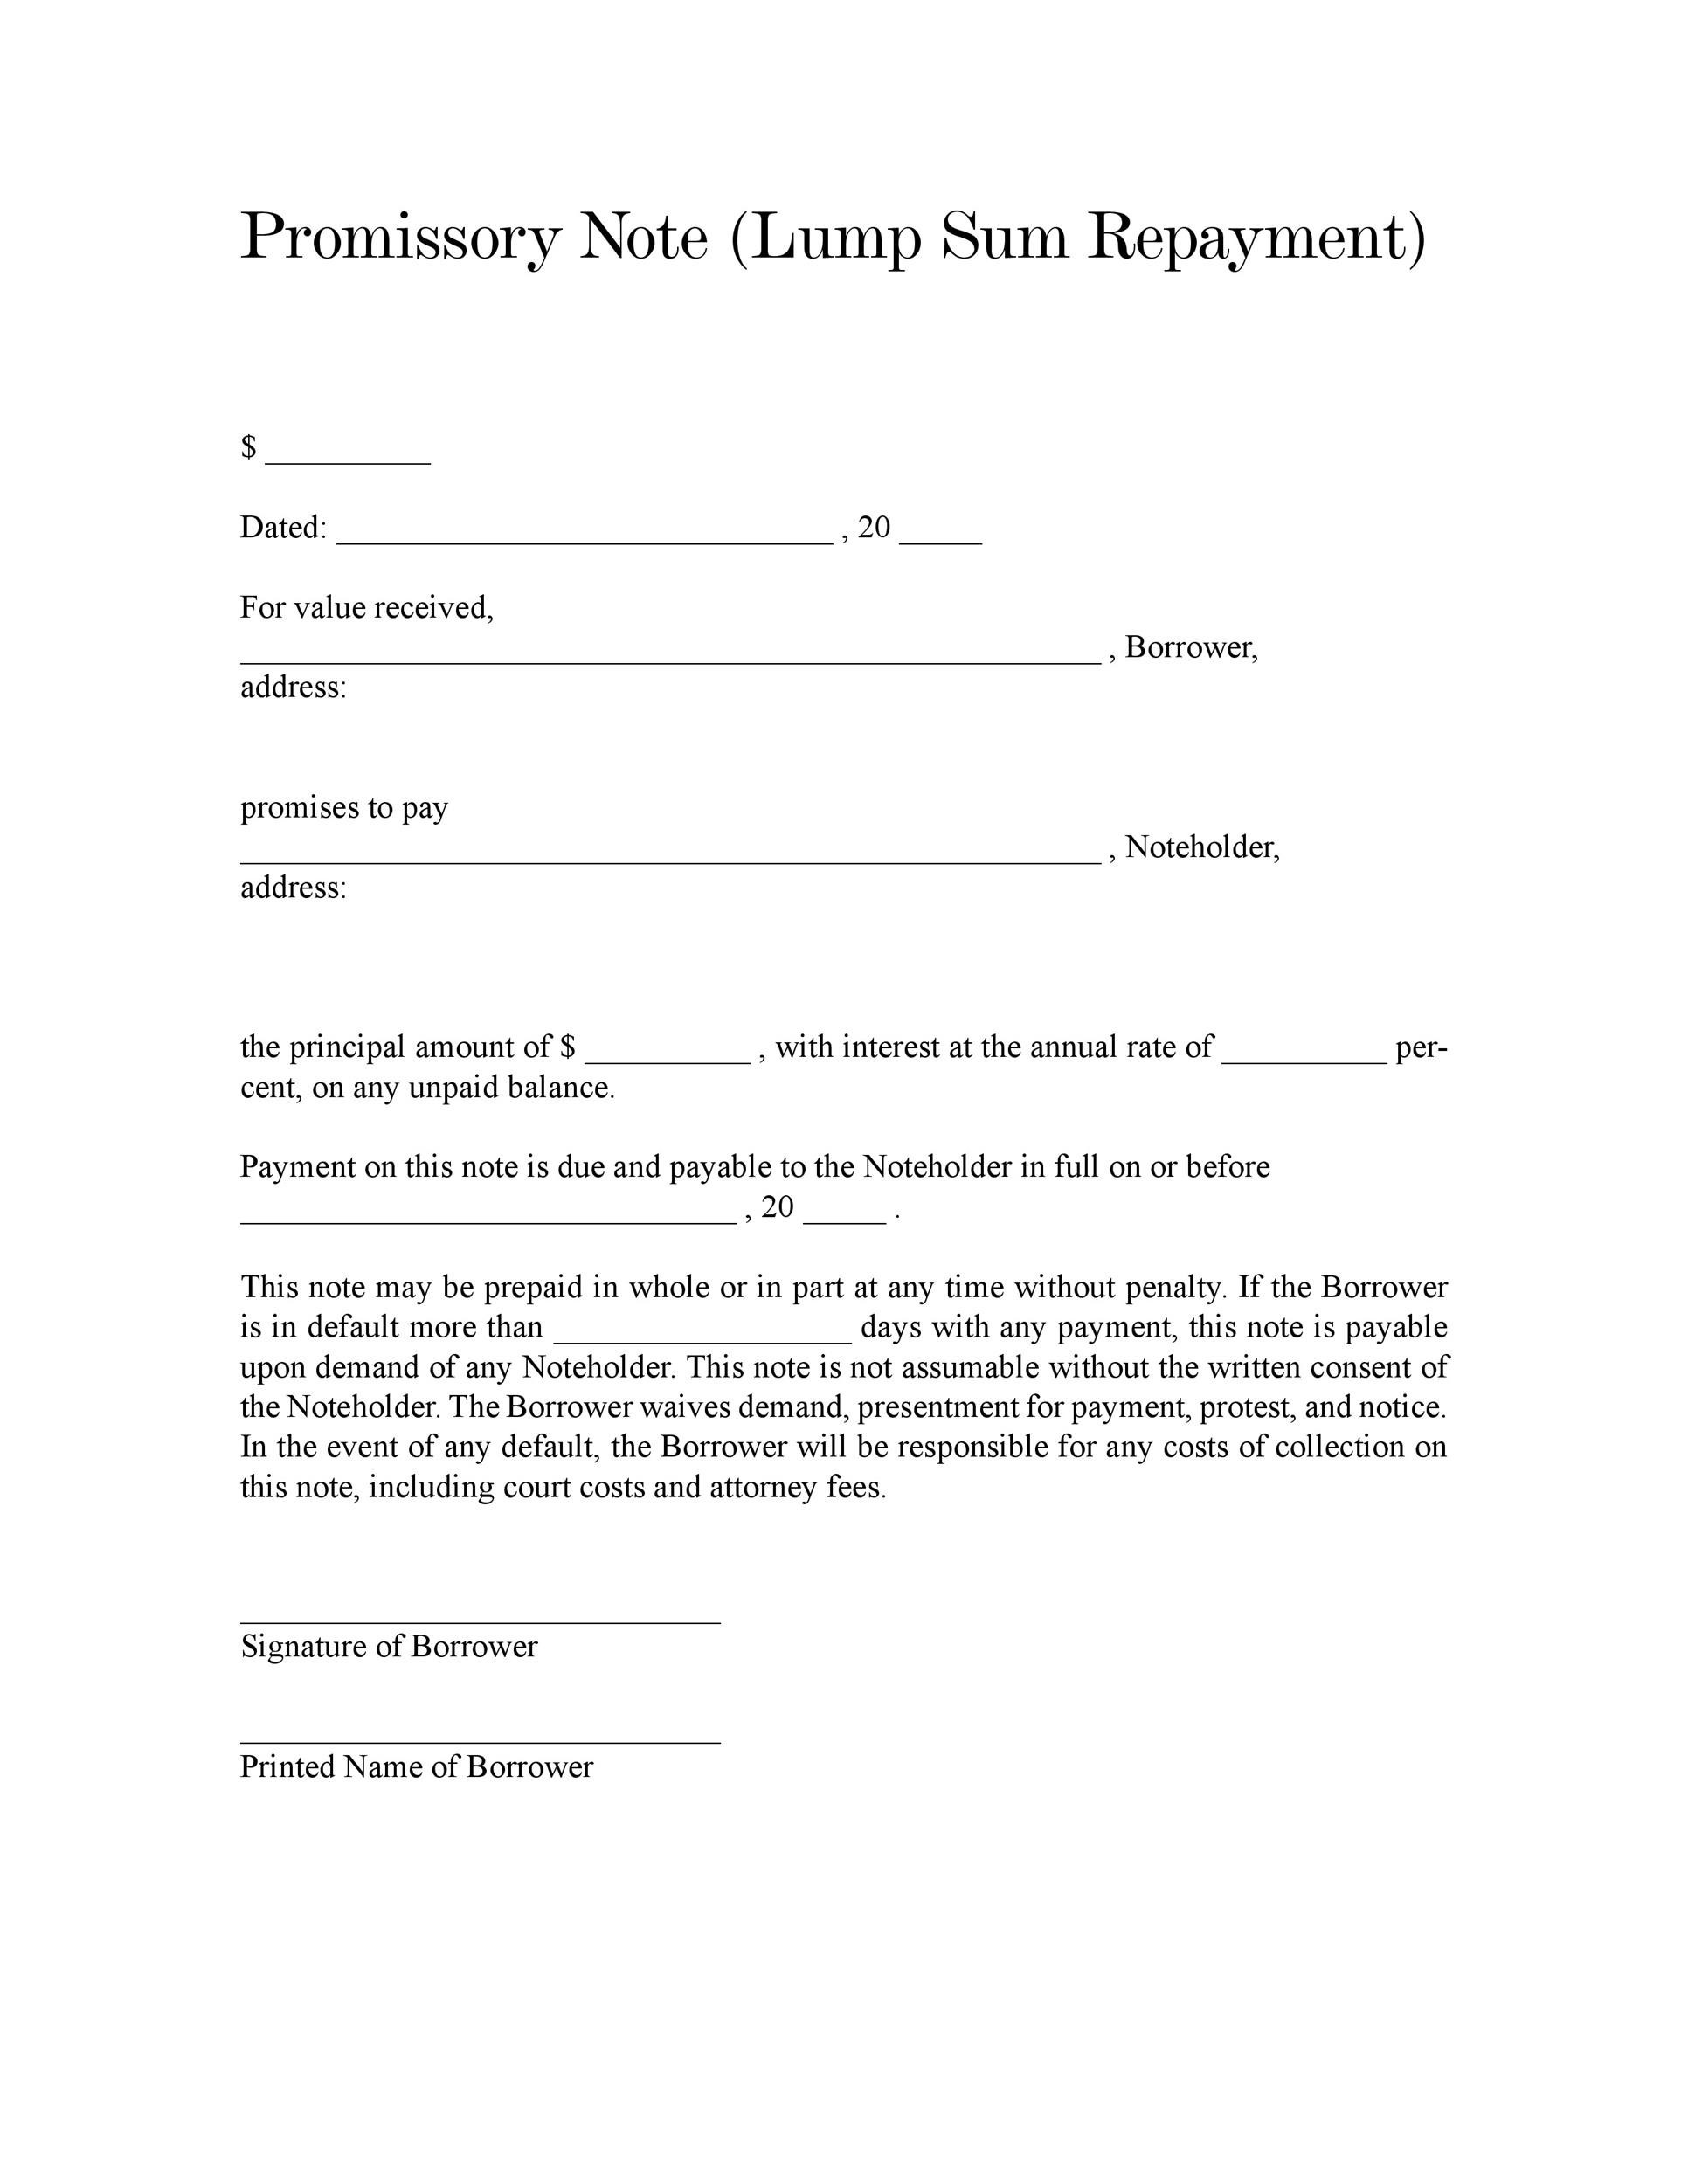 Wonderful Printable Promissory Note Template 17 Pertaining To Draft Of Promissory Note